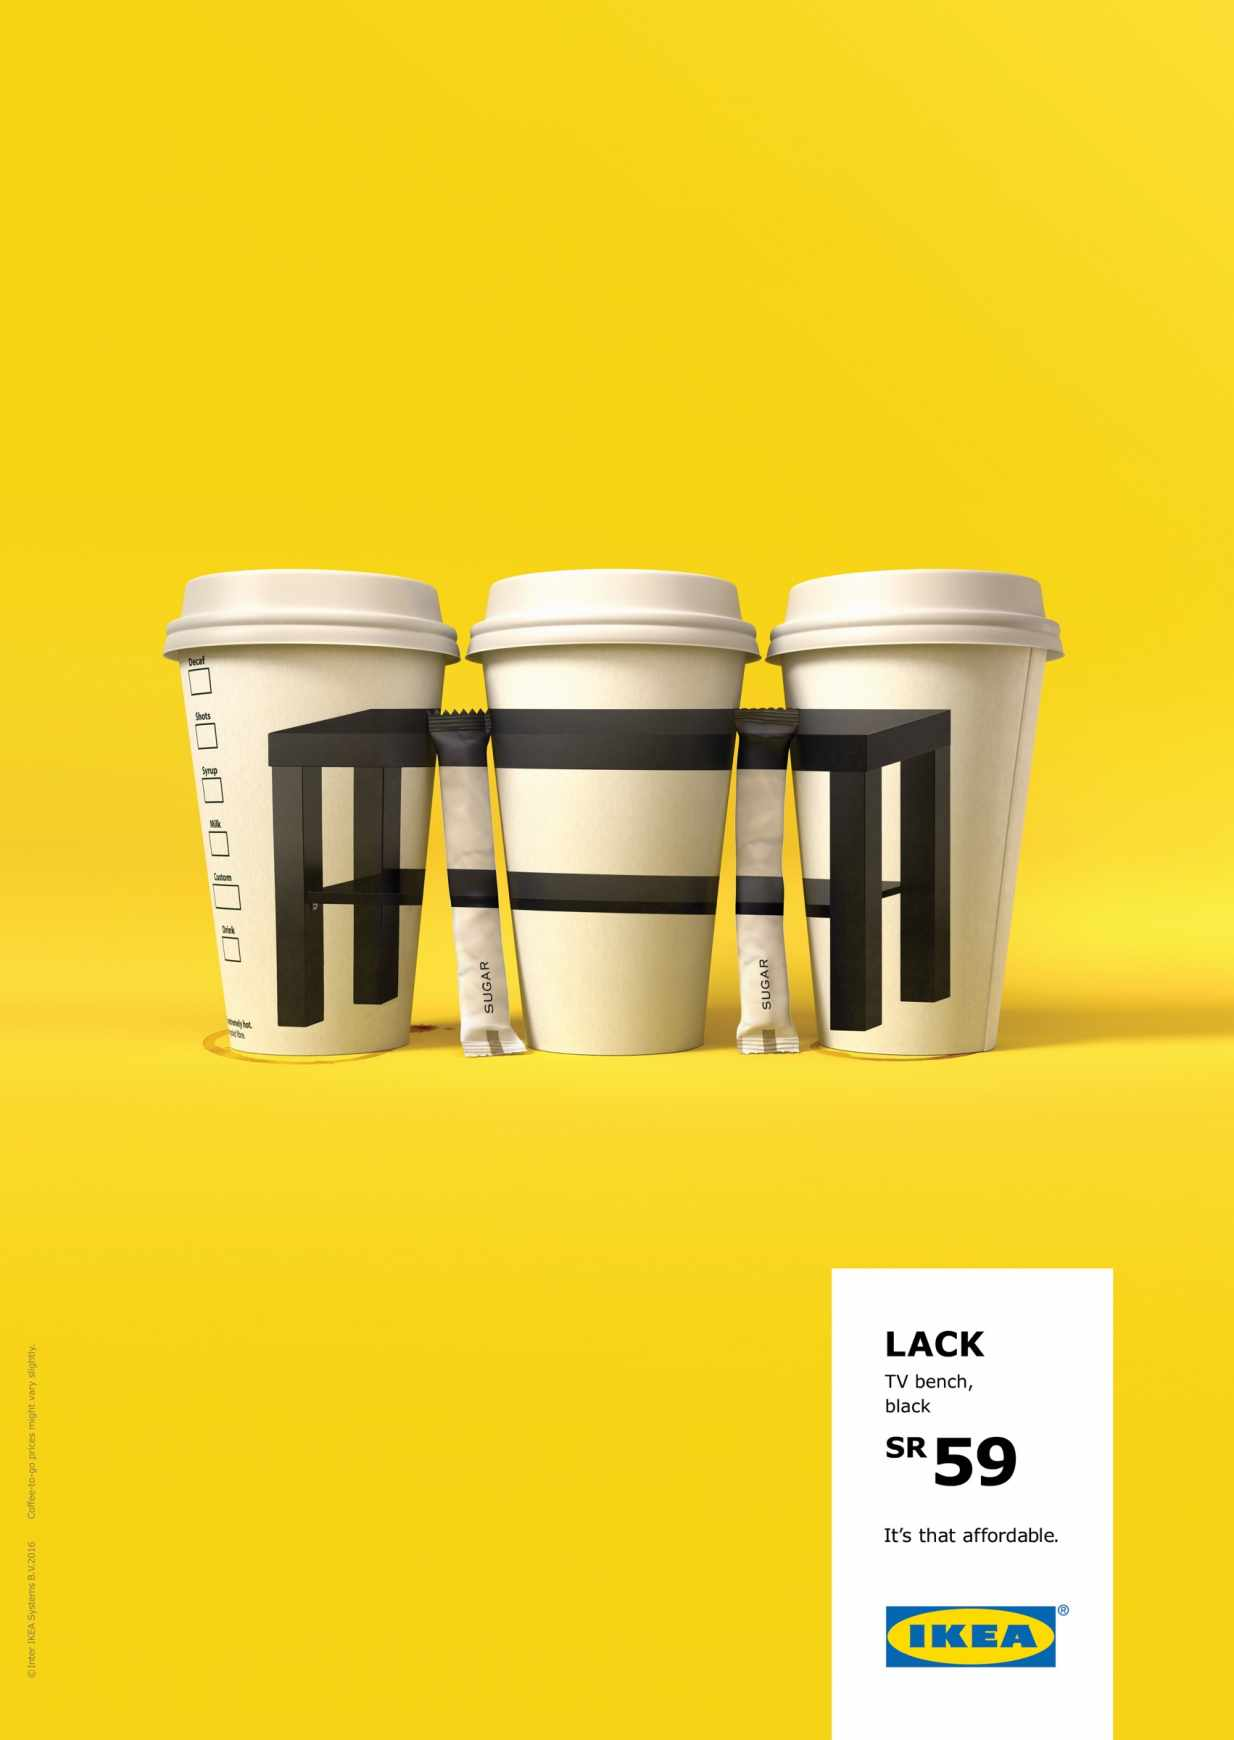 It's that affordable: l'ultima campagna IKEA Arabia Saudita